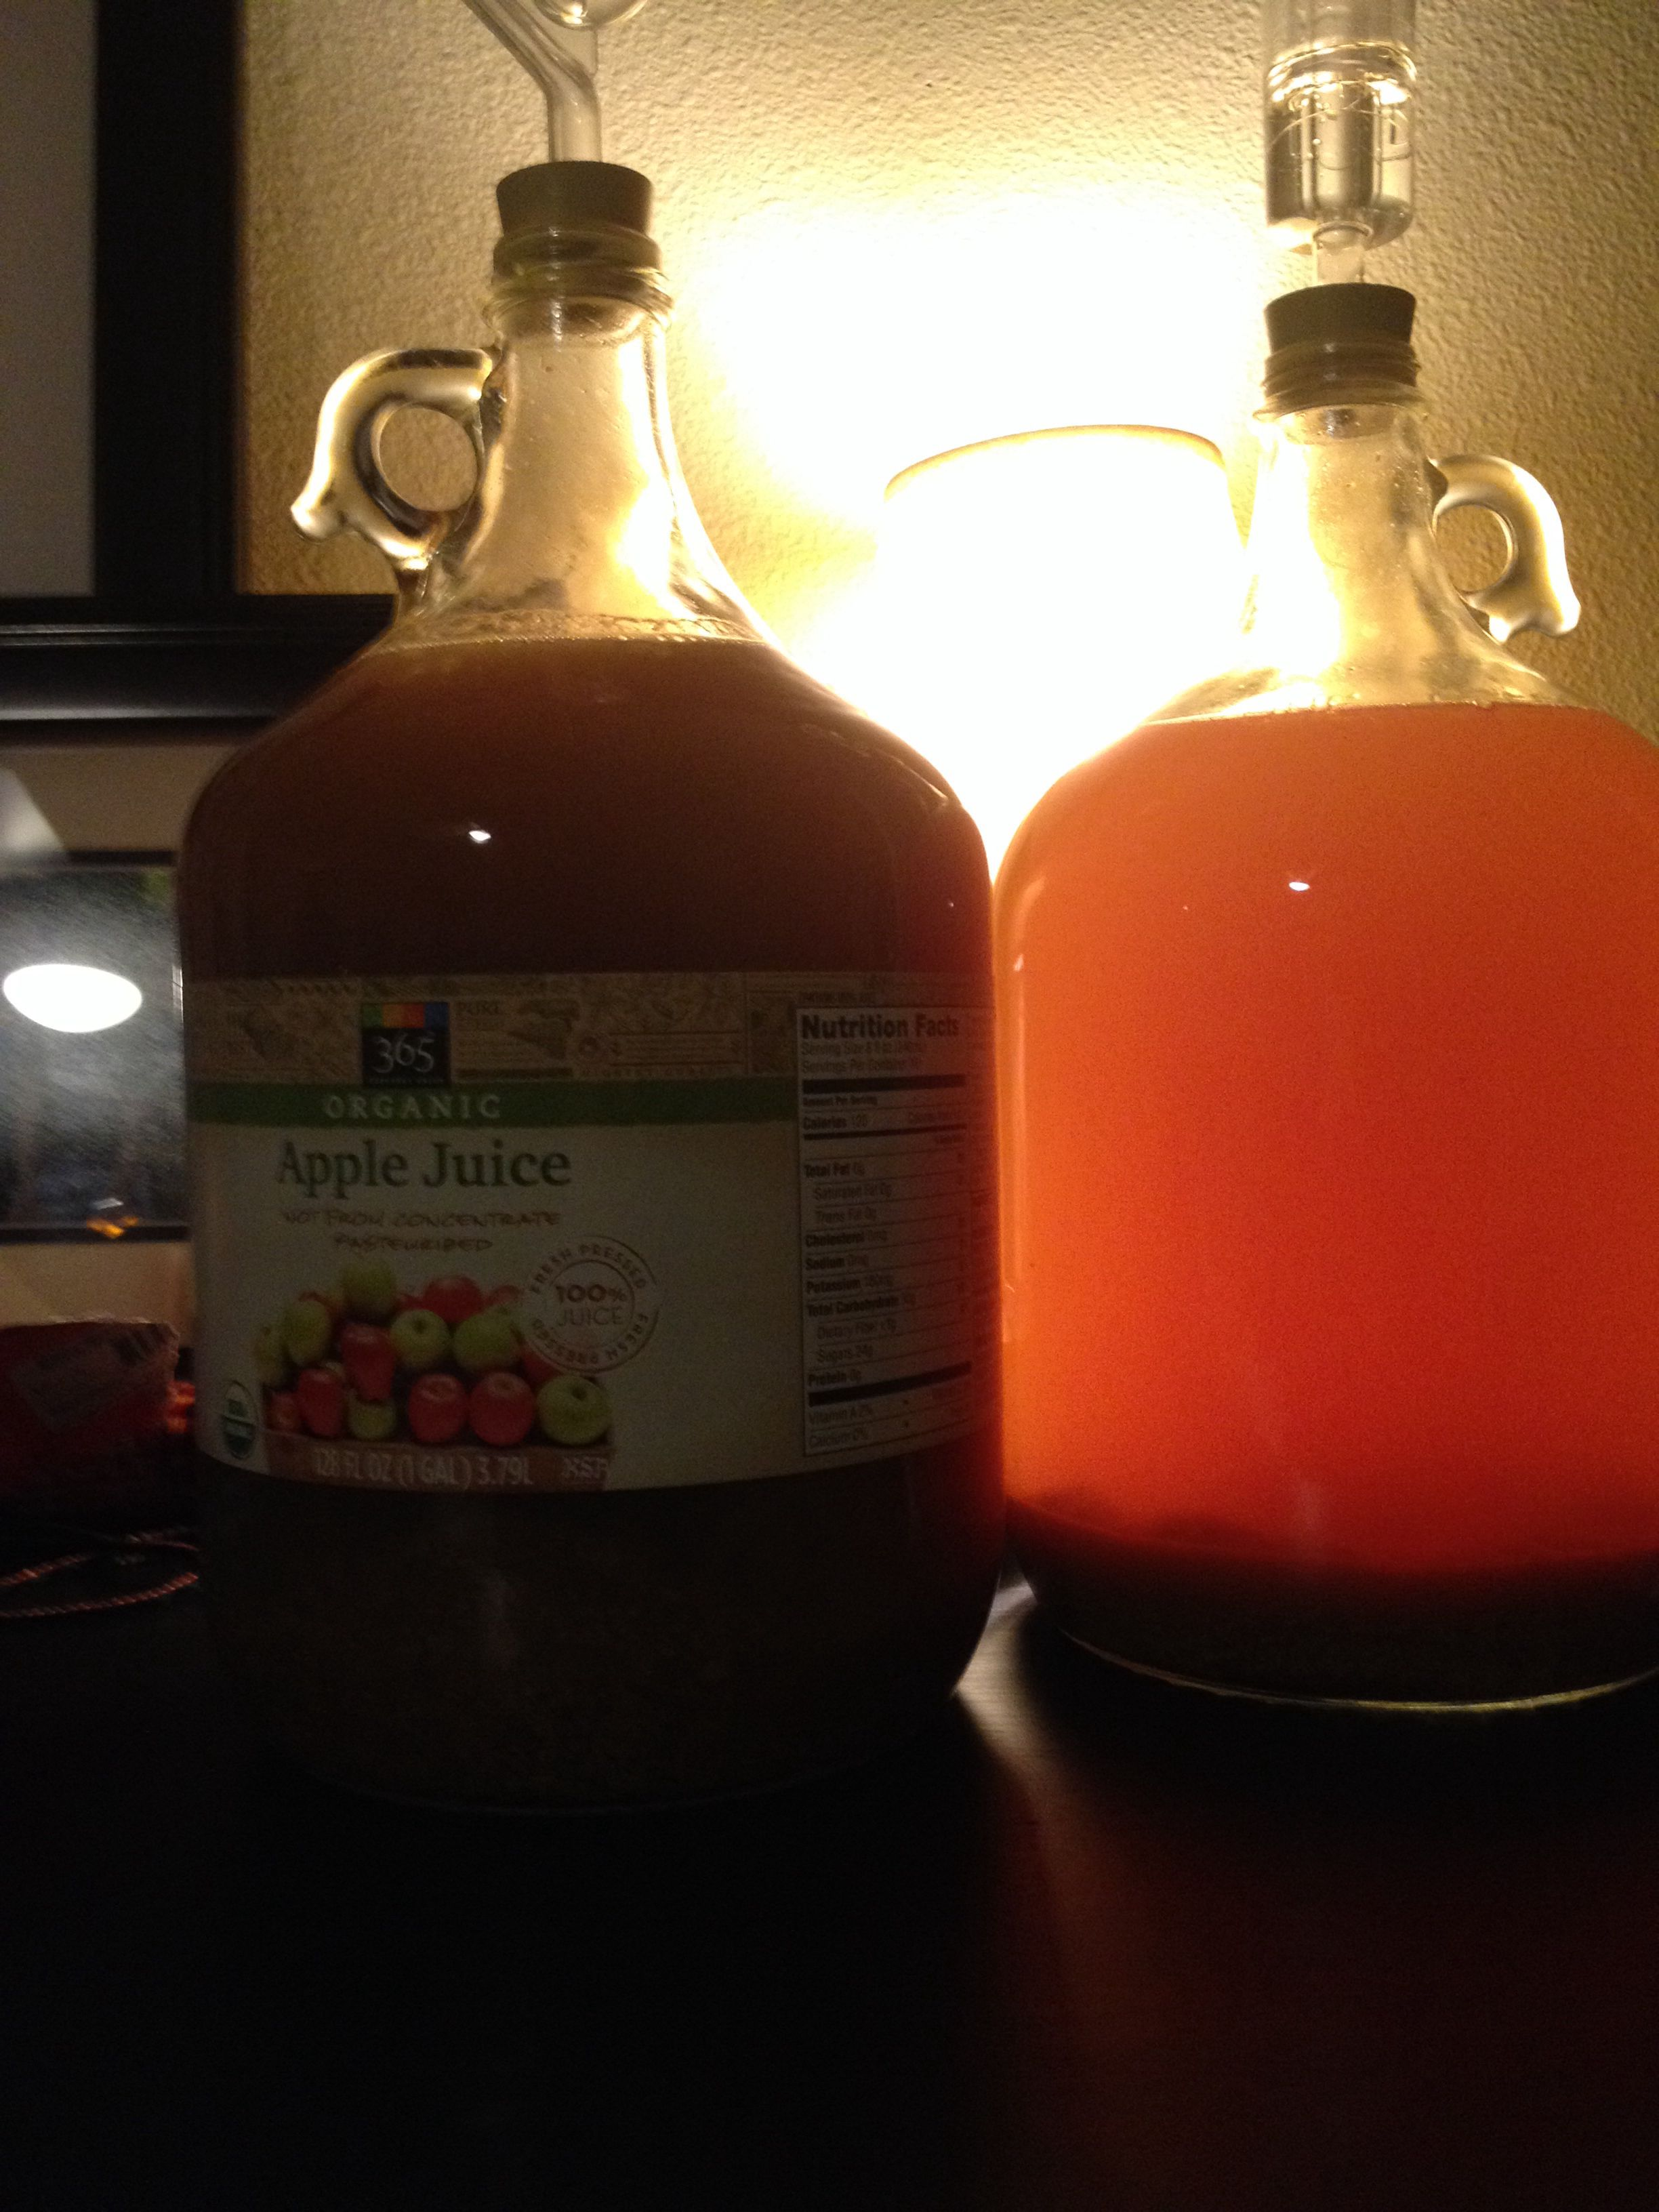 Pumpkin Pie Hard Cider Photo Is Day One Of Fermentation Organic Apple Juice From Whole Foods On The Left Winc Organic Apple Juice Flavored Beer Beer Brewing